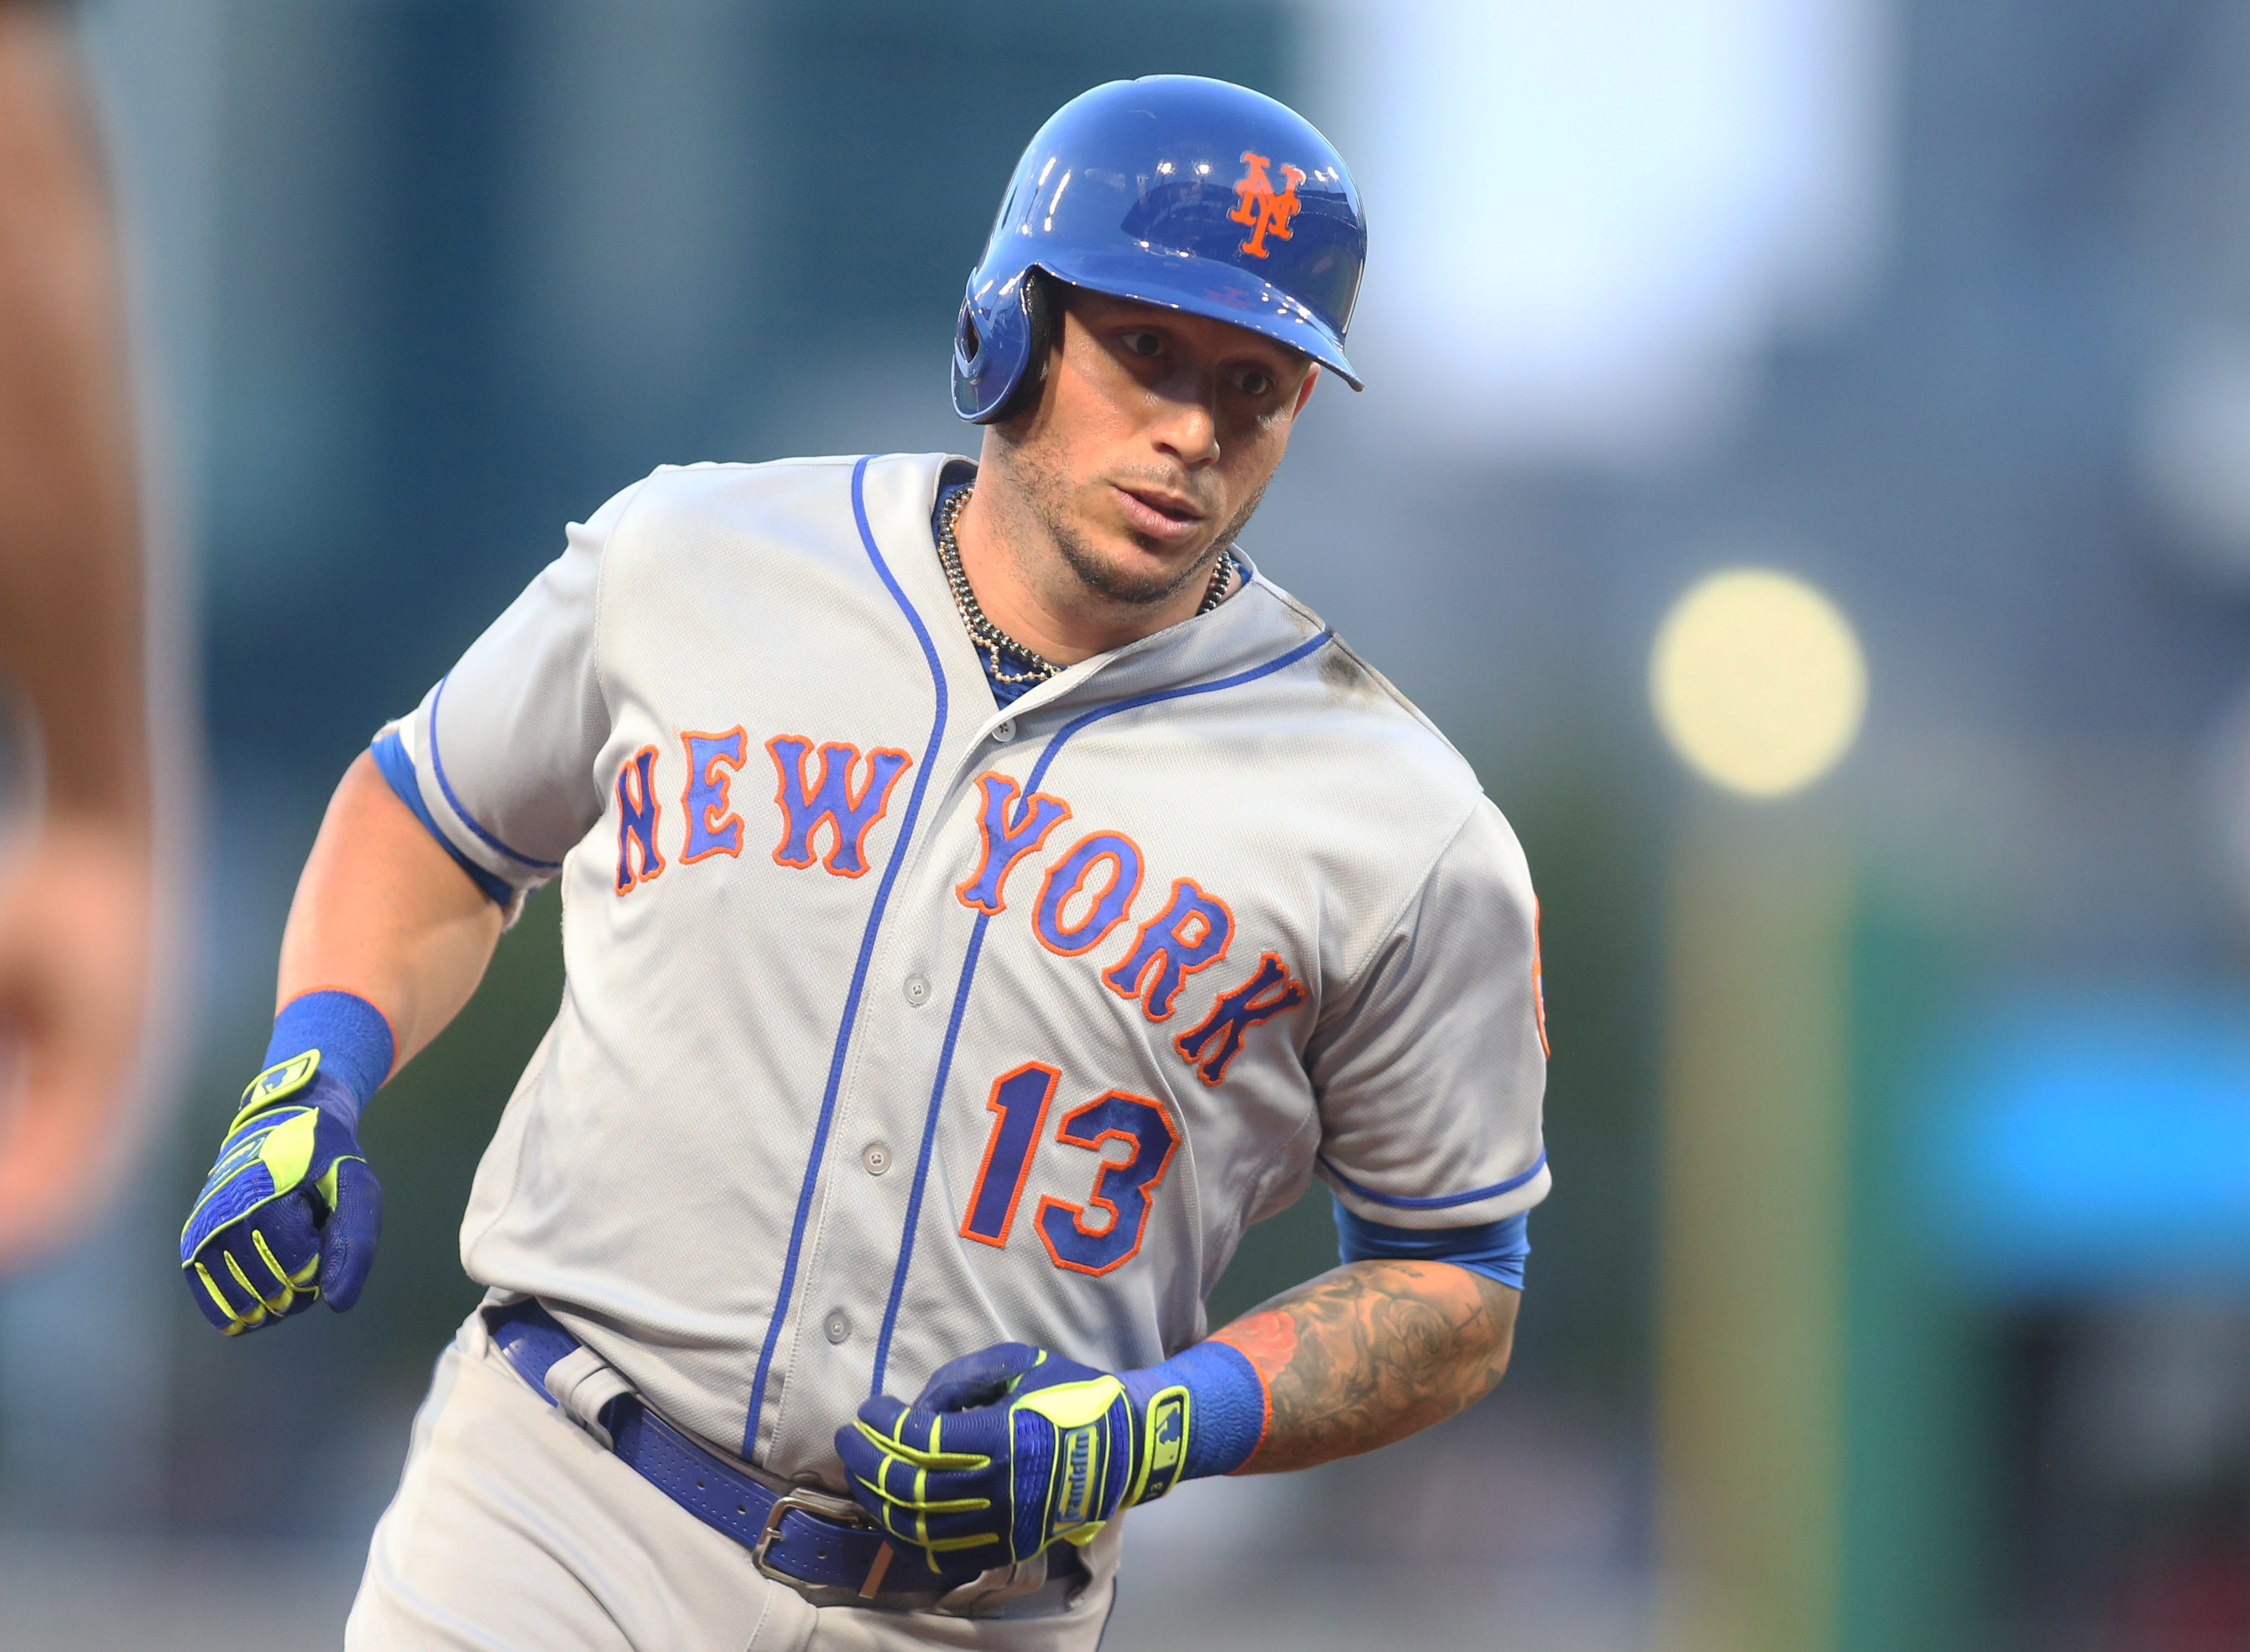 Diamondbacks sign third baseman Asdrubal Cabrera